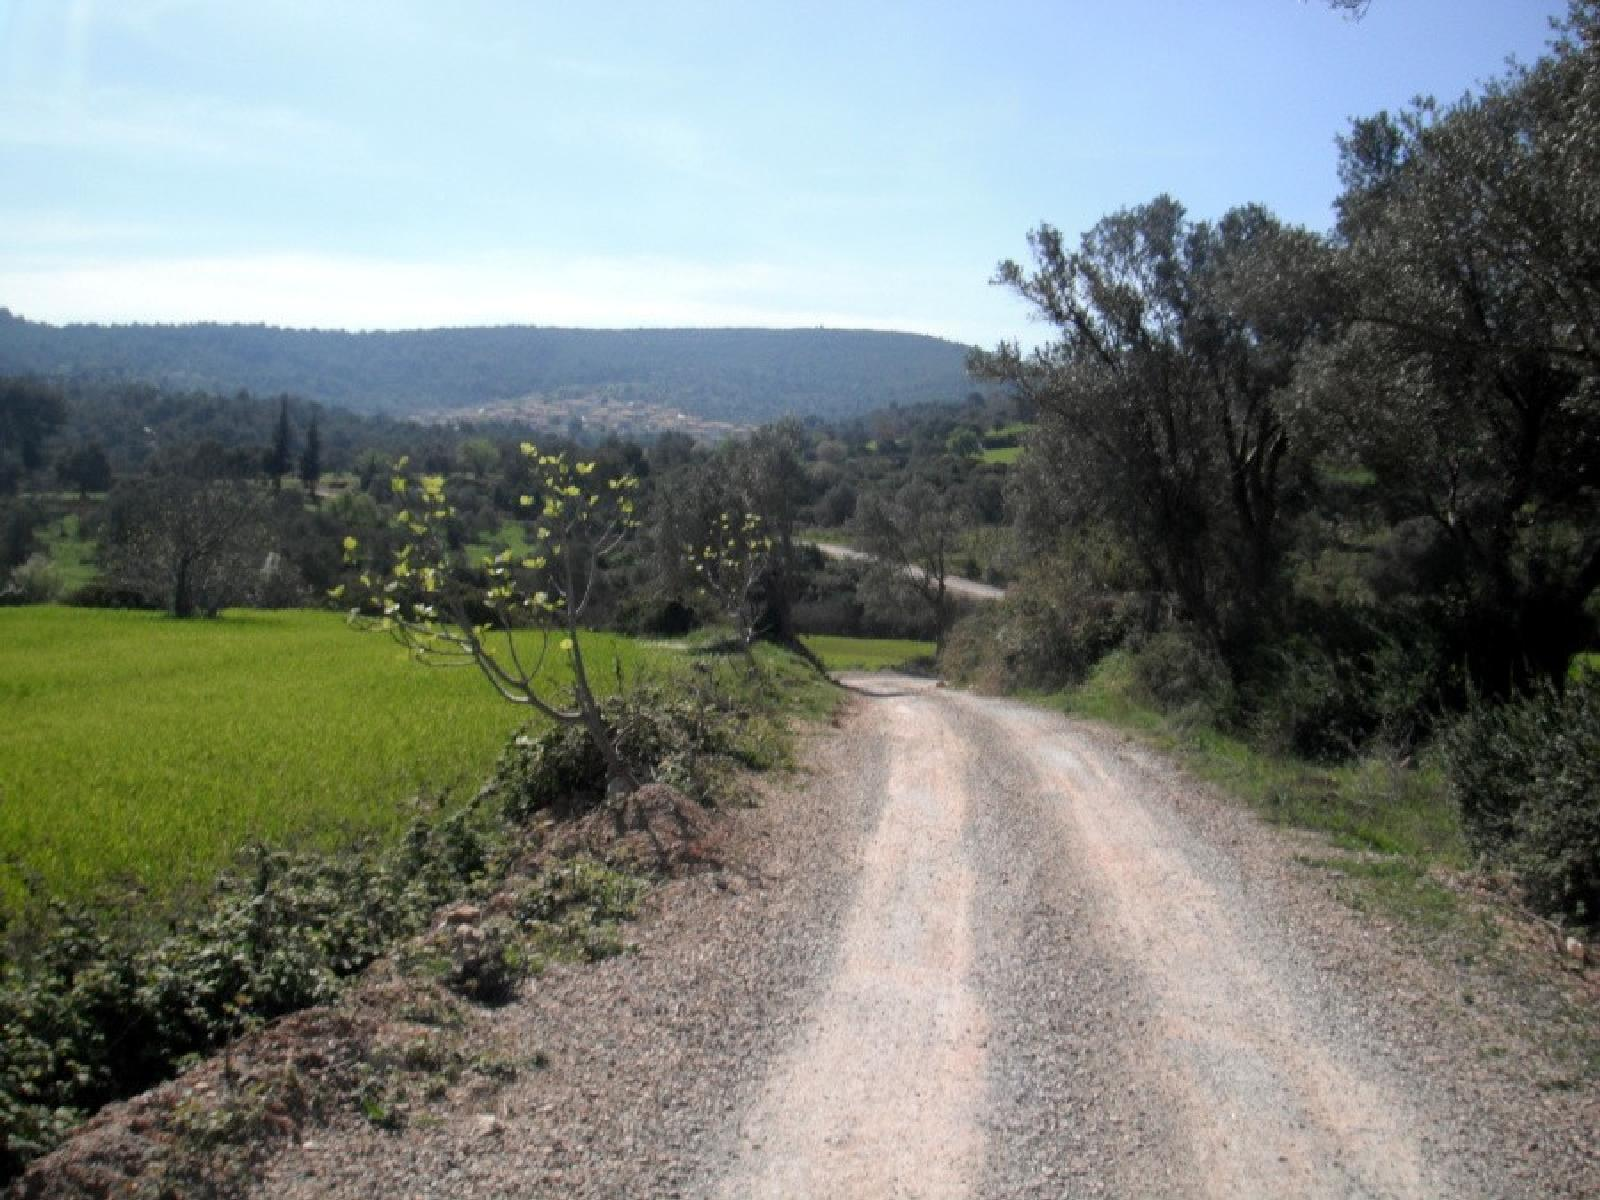 Photo of From Highway to Kocadag hill